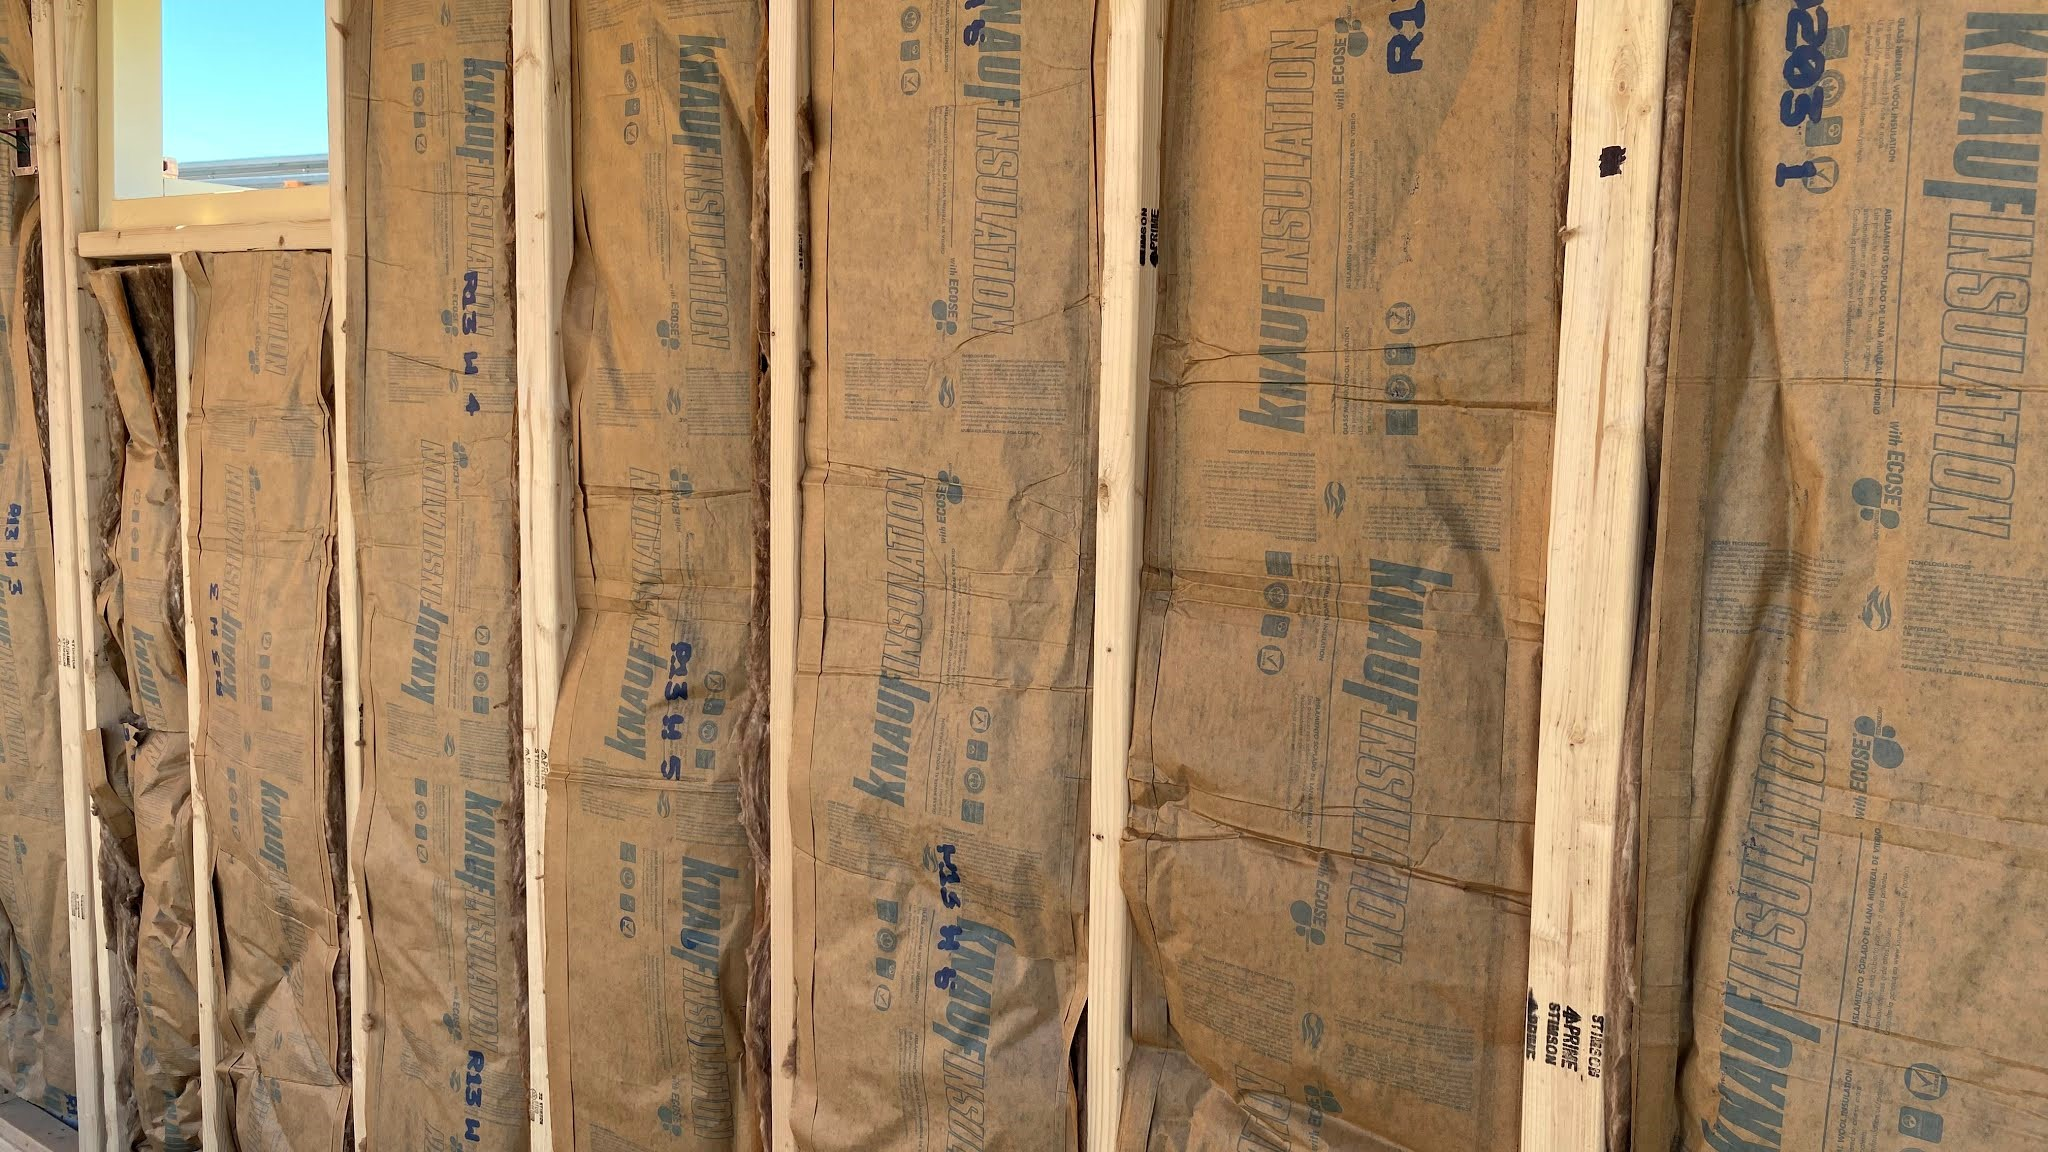 R-13 Fiberglass Insulation for storage containers for sale